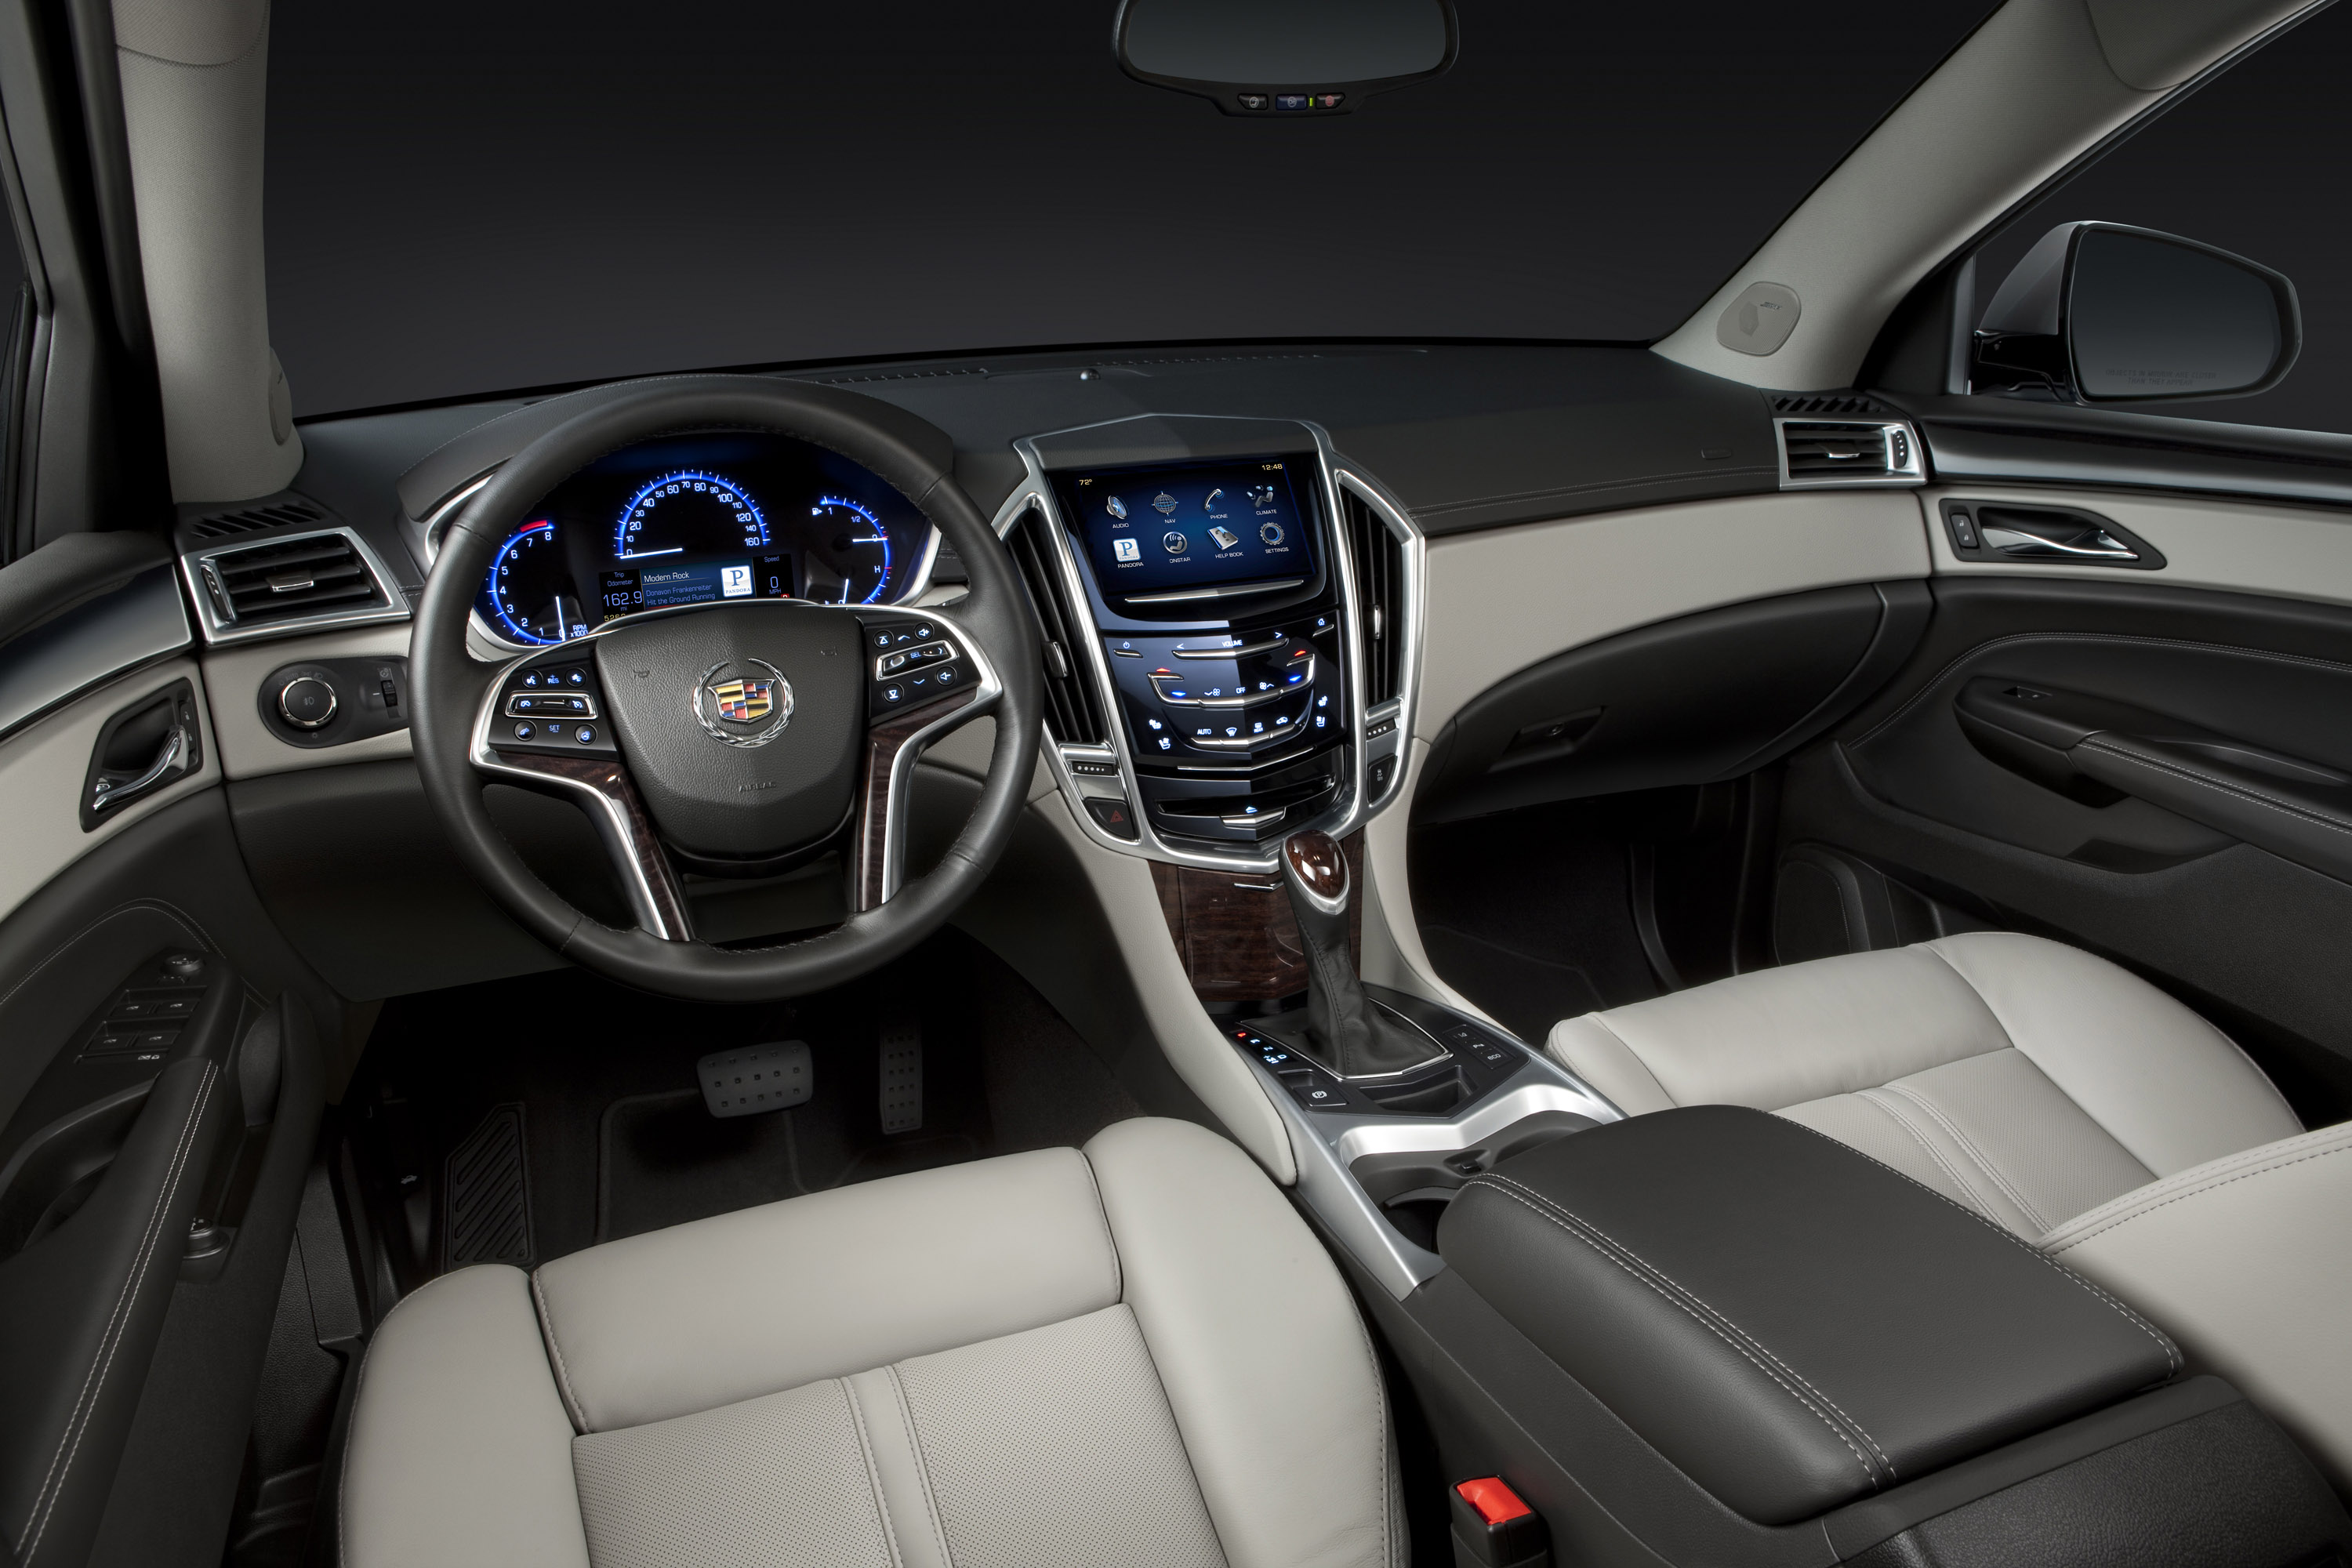 2013 Cadillac SRX Luxury Crossover